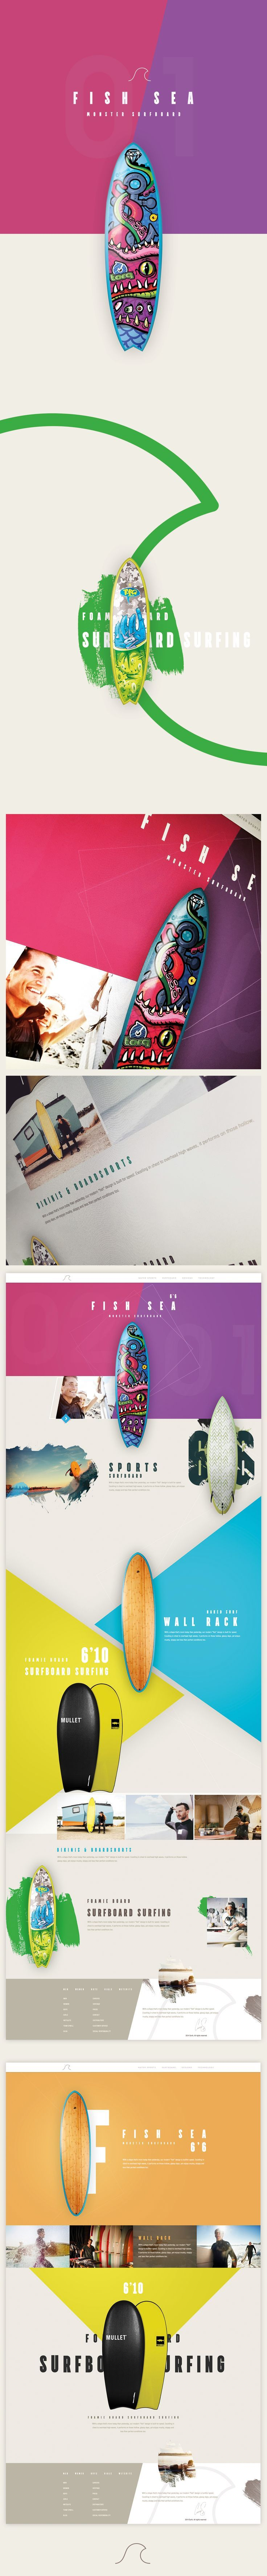 Surf Board Modern Website Design 2015